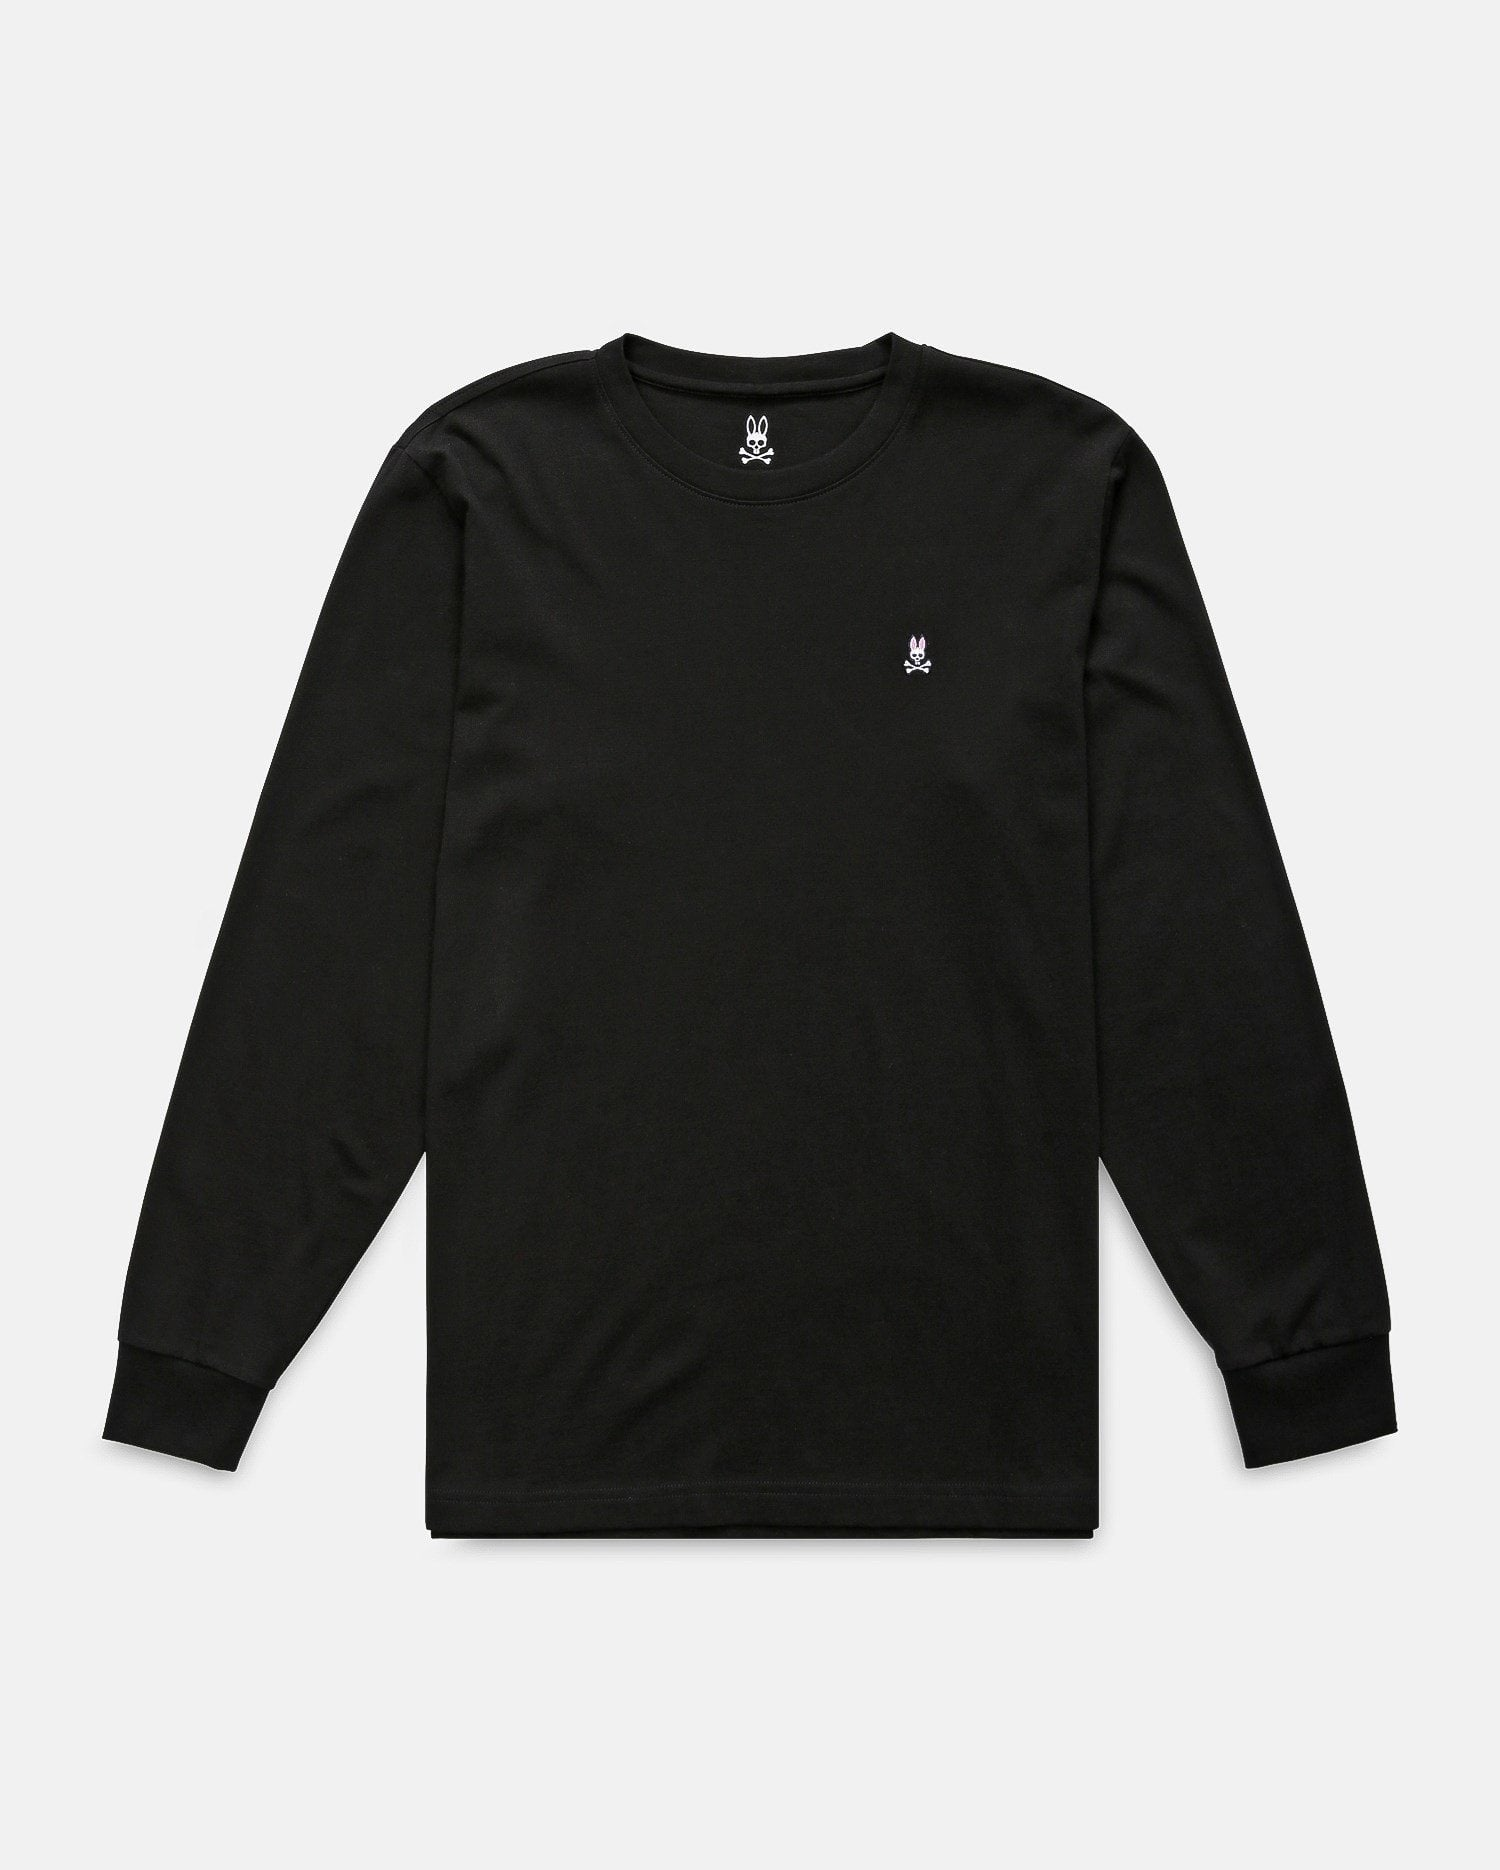 MENS L/S T-SHIRT - B6T422ARPC - BLACK (BLK)